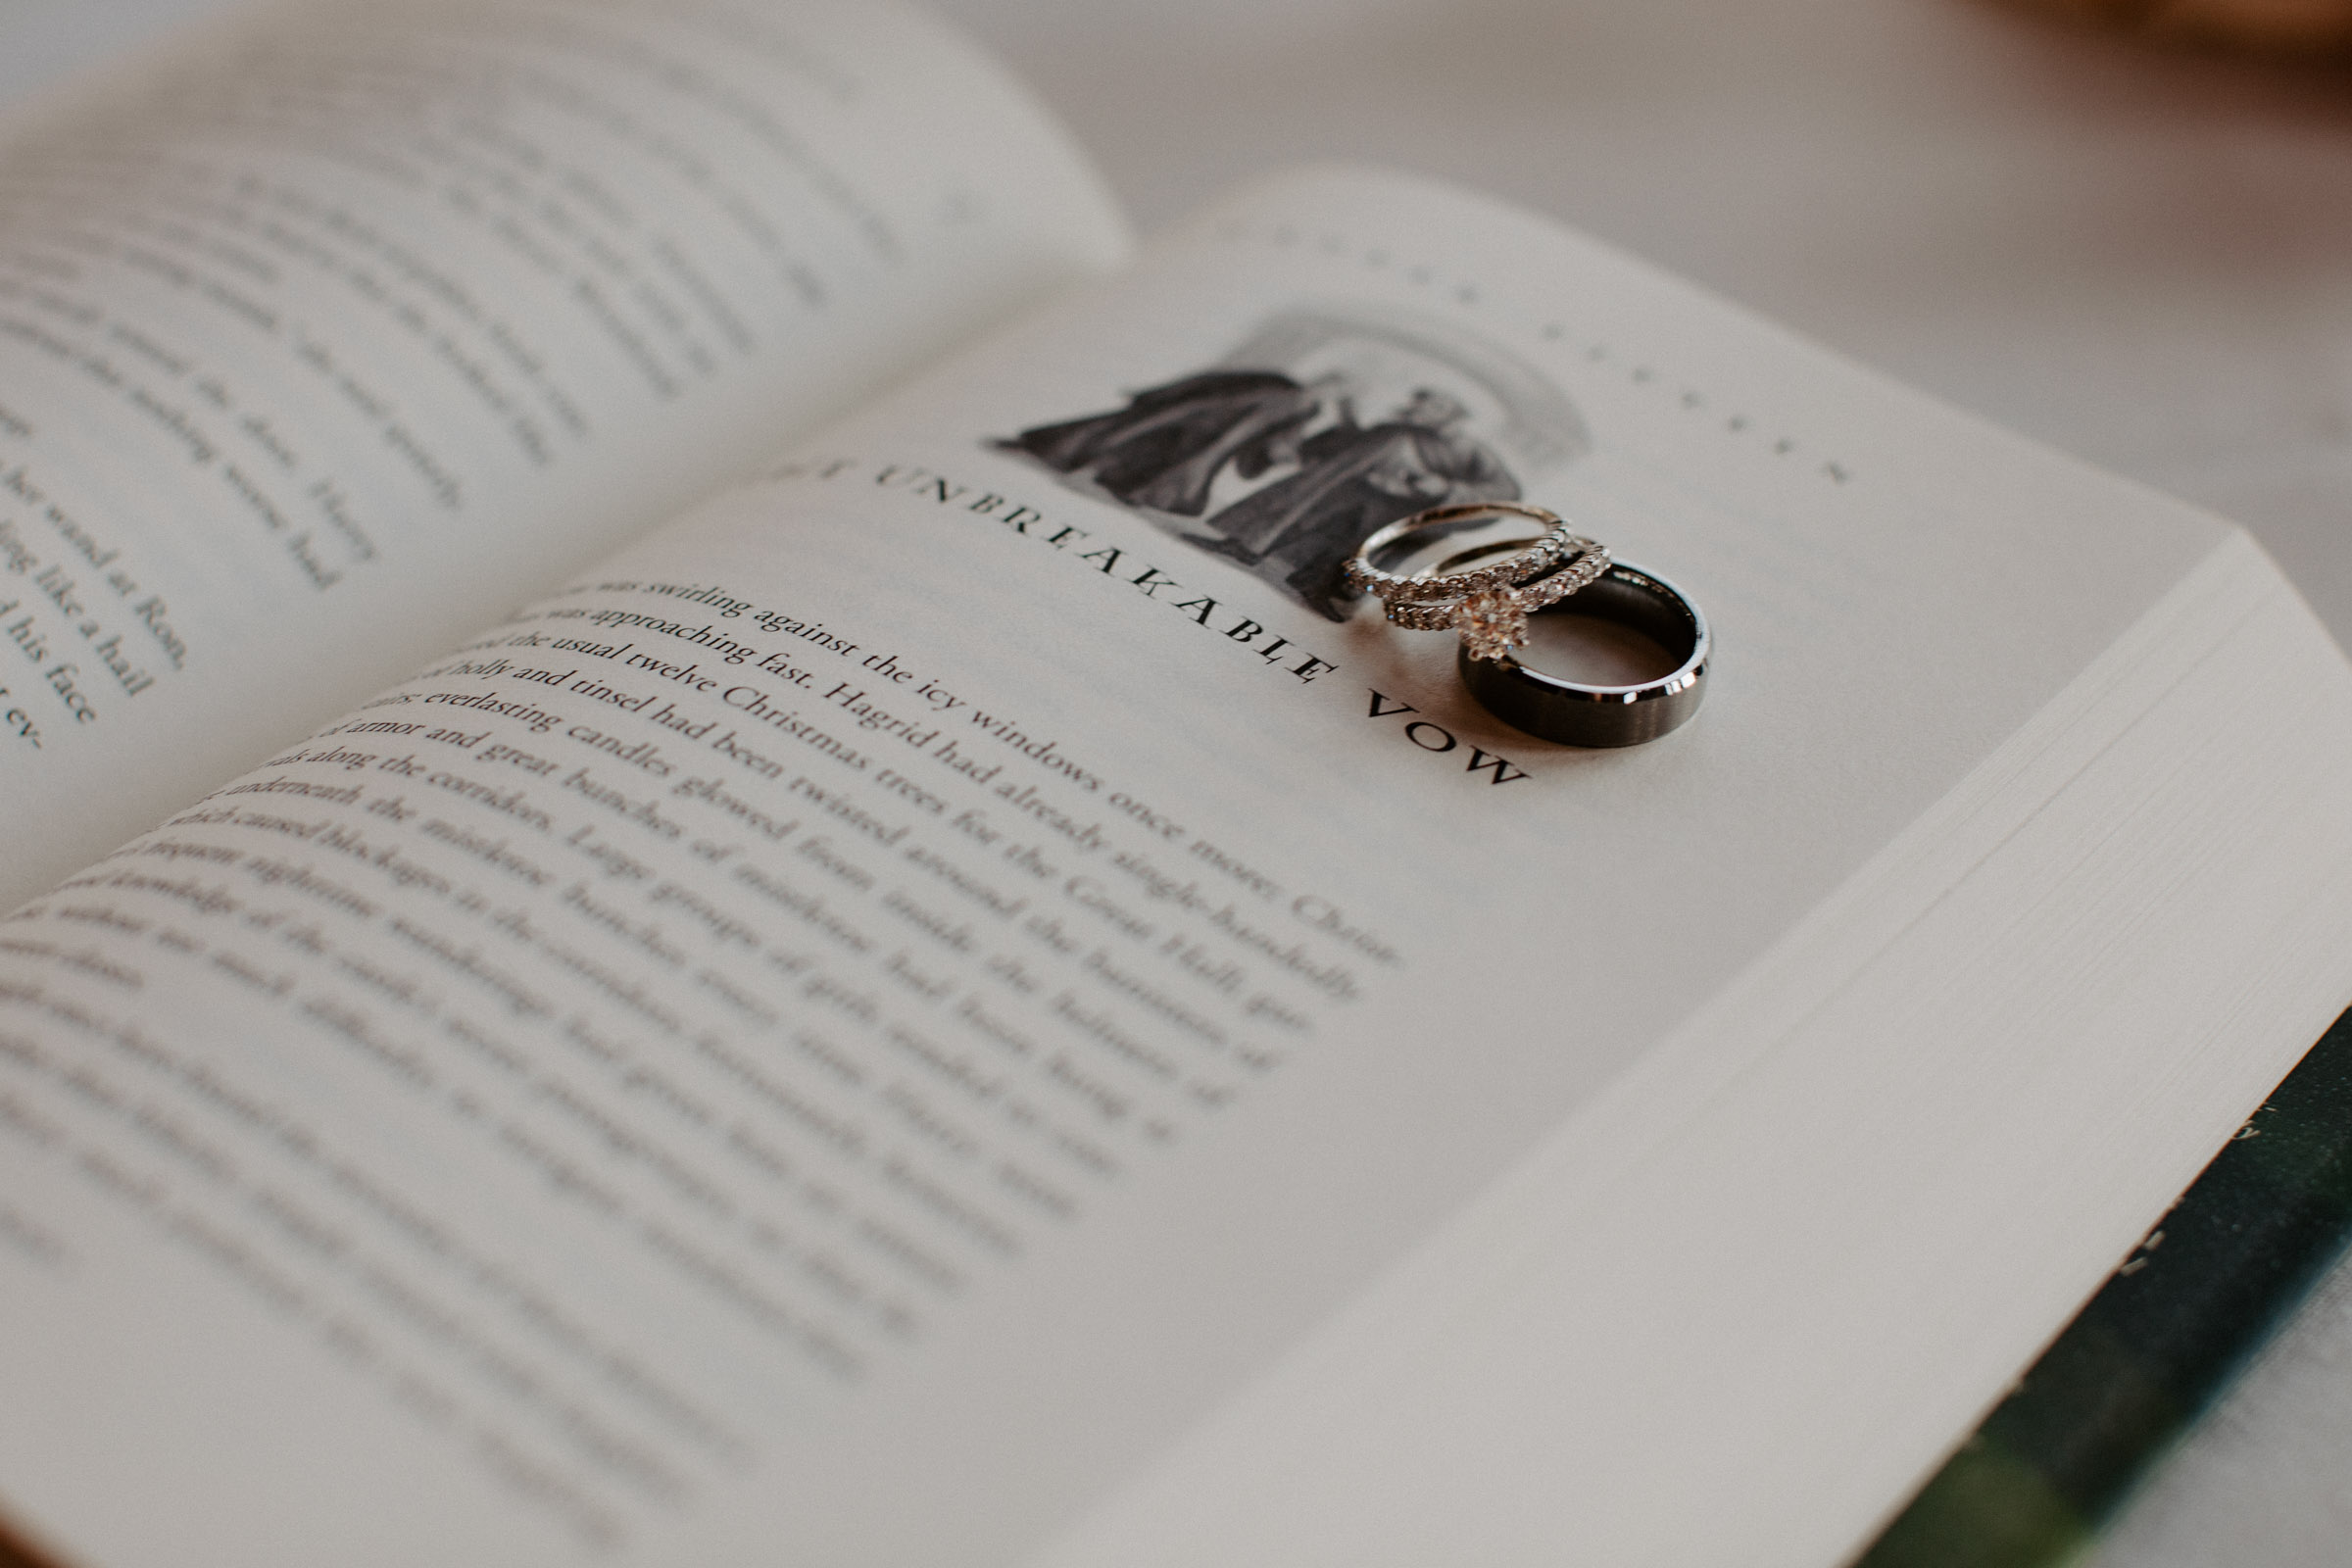 Harry potter book - the unbreakable vow - with wedding rings